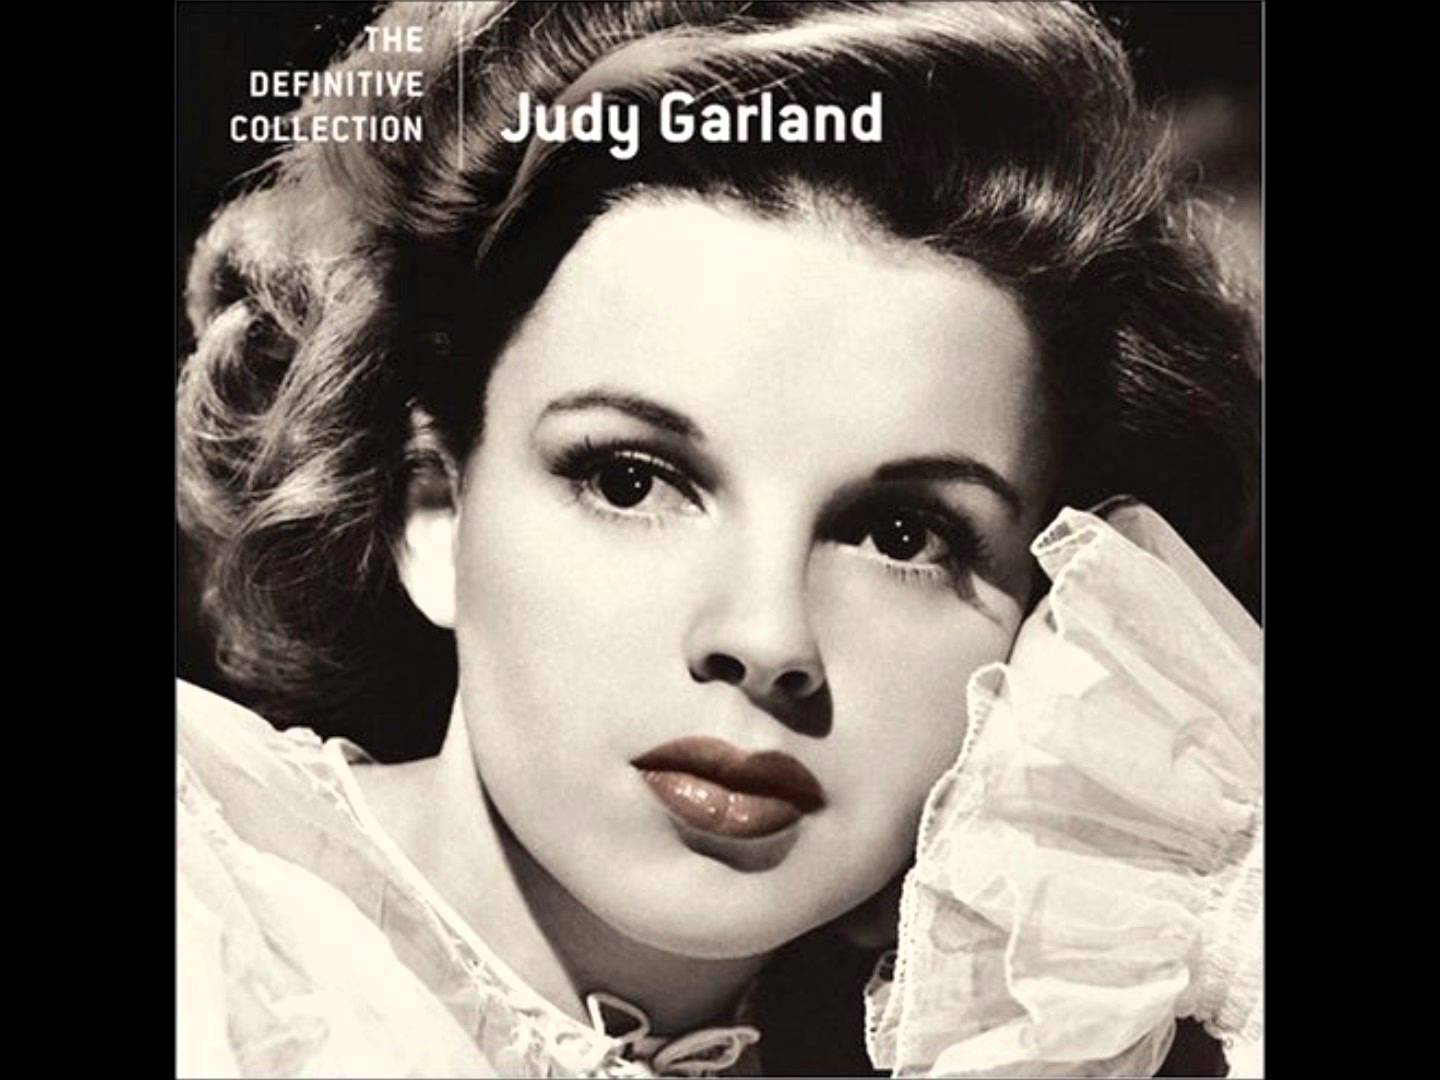 Have Yourself A Merry Little Christmas Judy Garland Always Brings Back The Most Wonderful Memories Of Growing Up W Judy Garland Judy Golden Age Of Hollywood